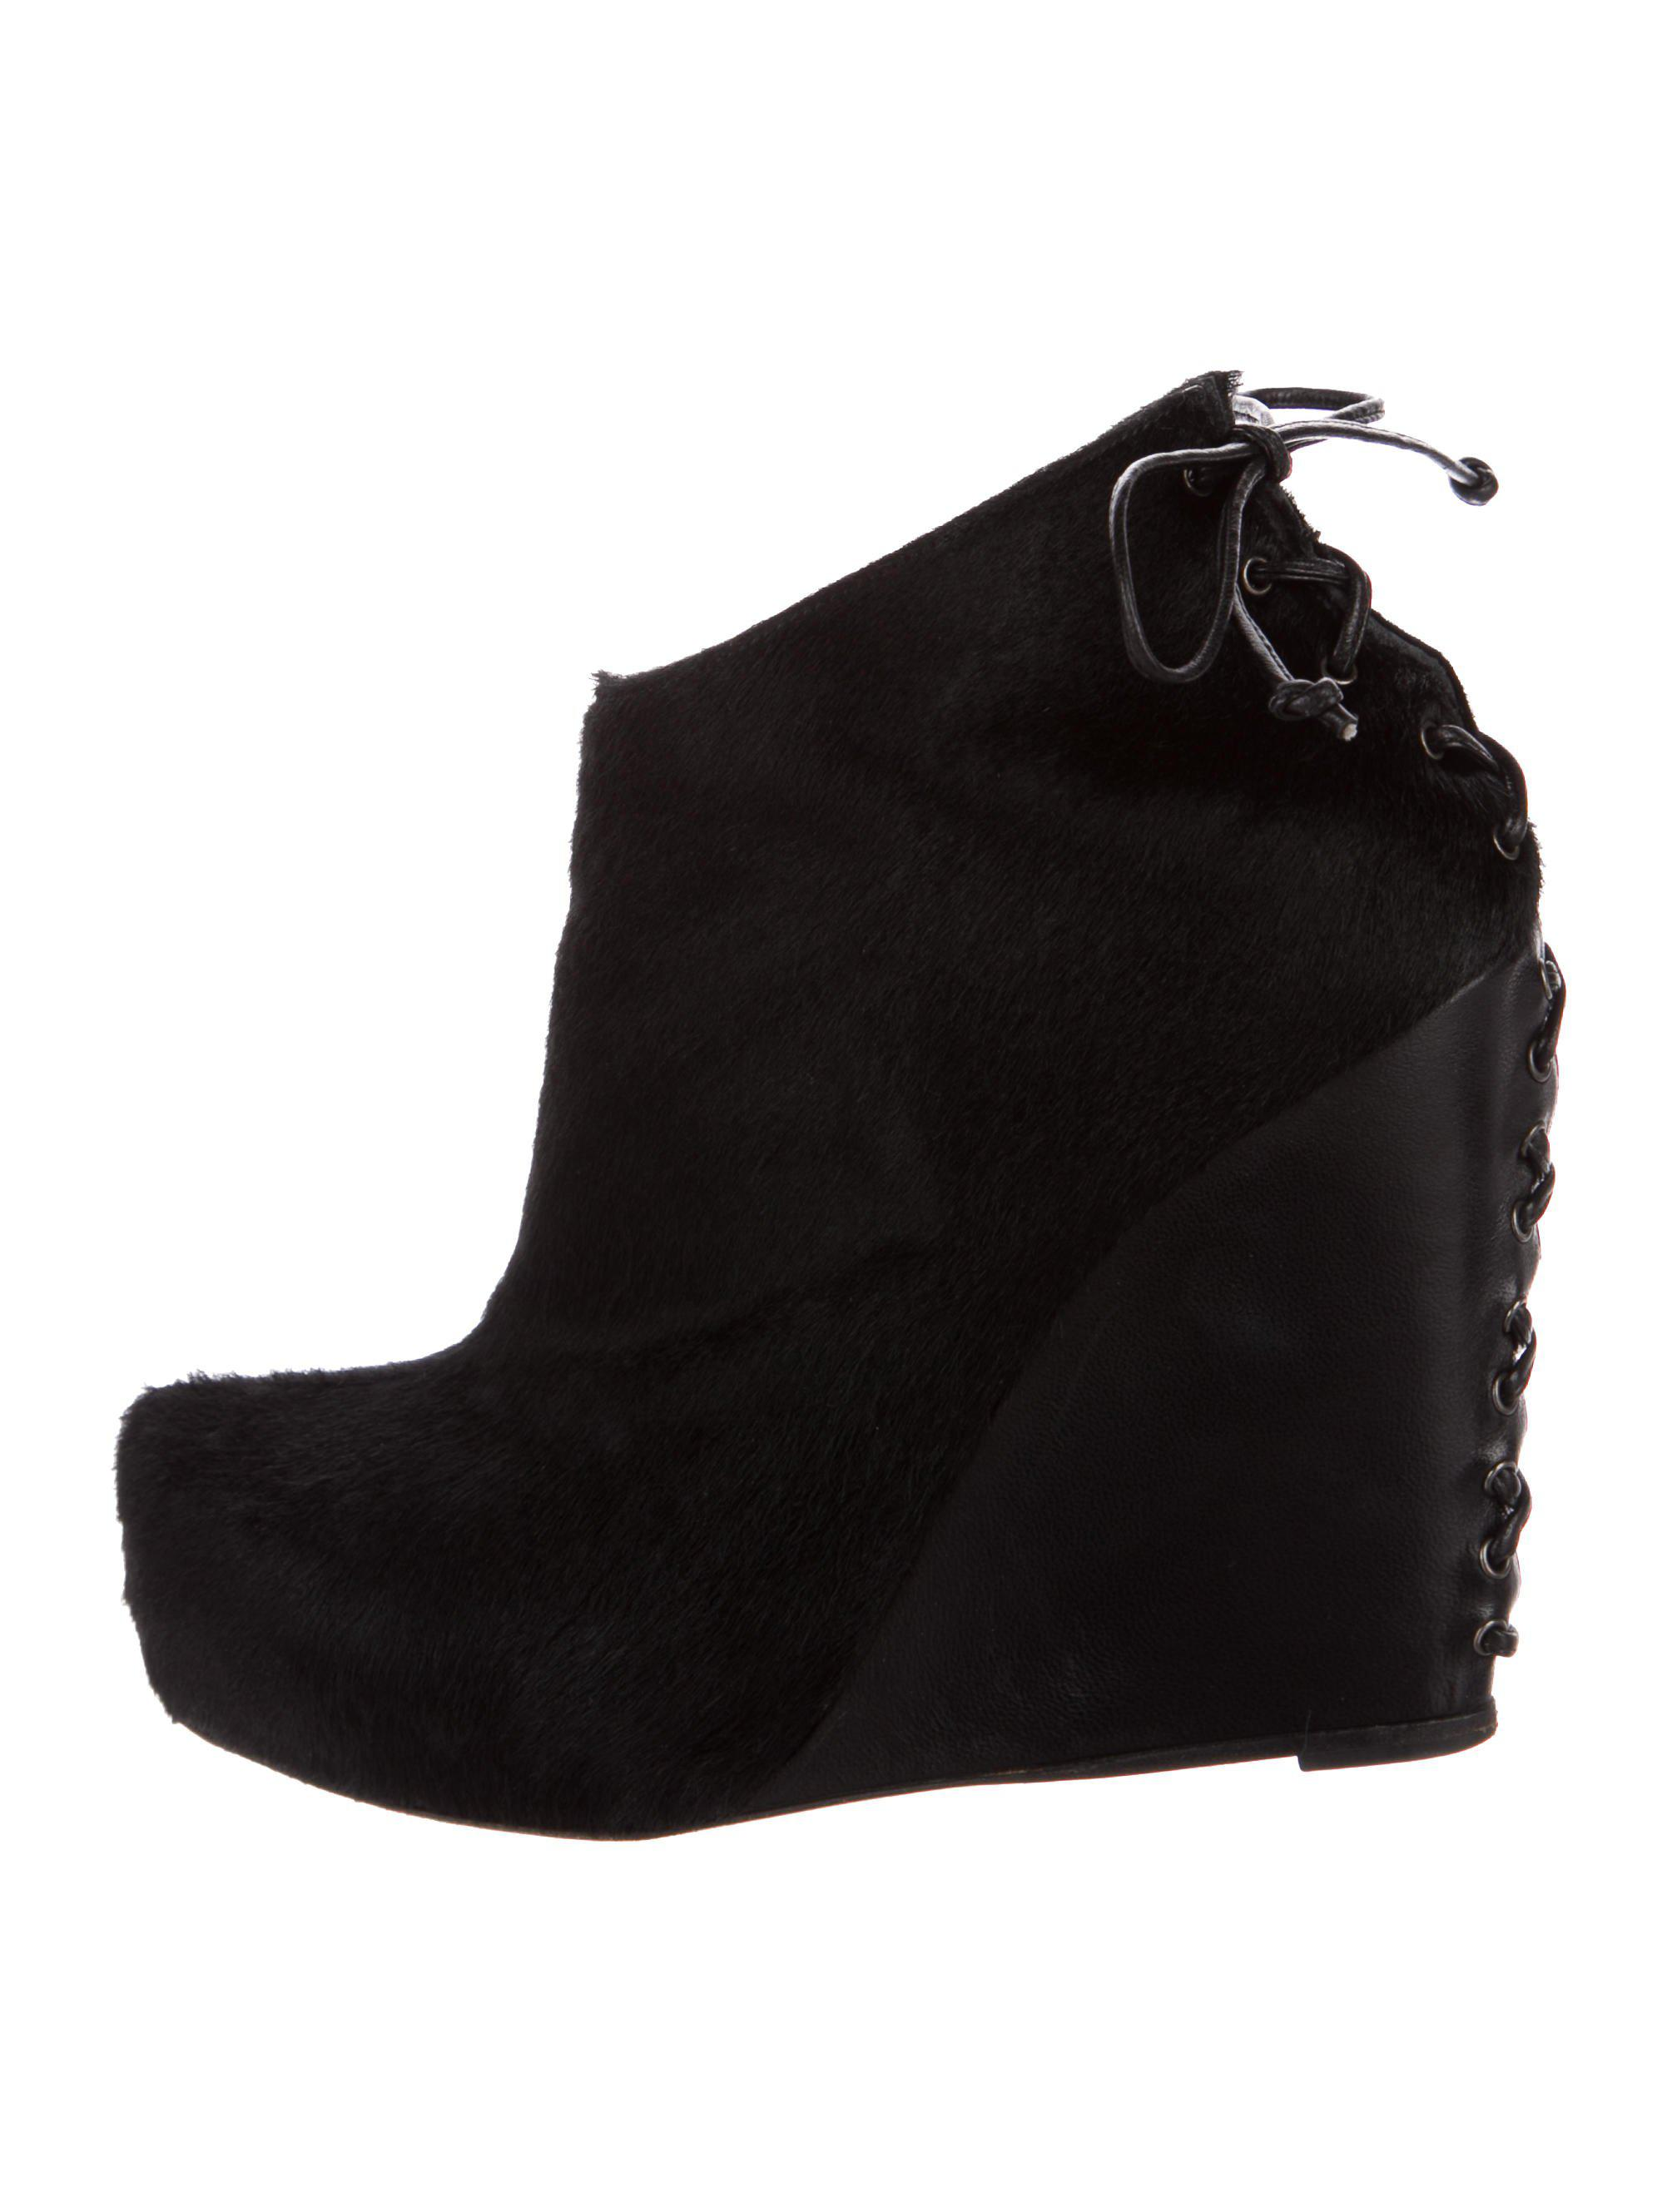 Jenni Kayne Ponyhair Wedge Booties marketable cheap online outlet many kinds of n5TnQ501